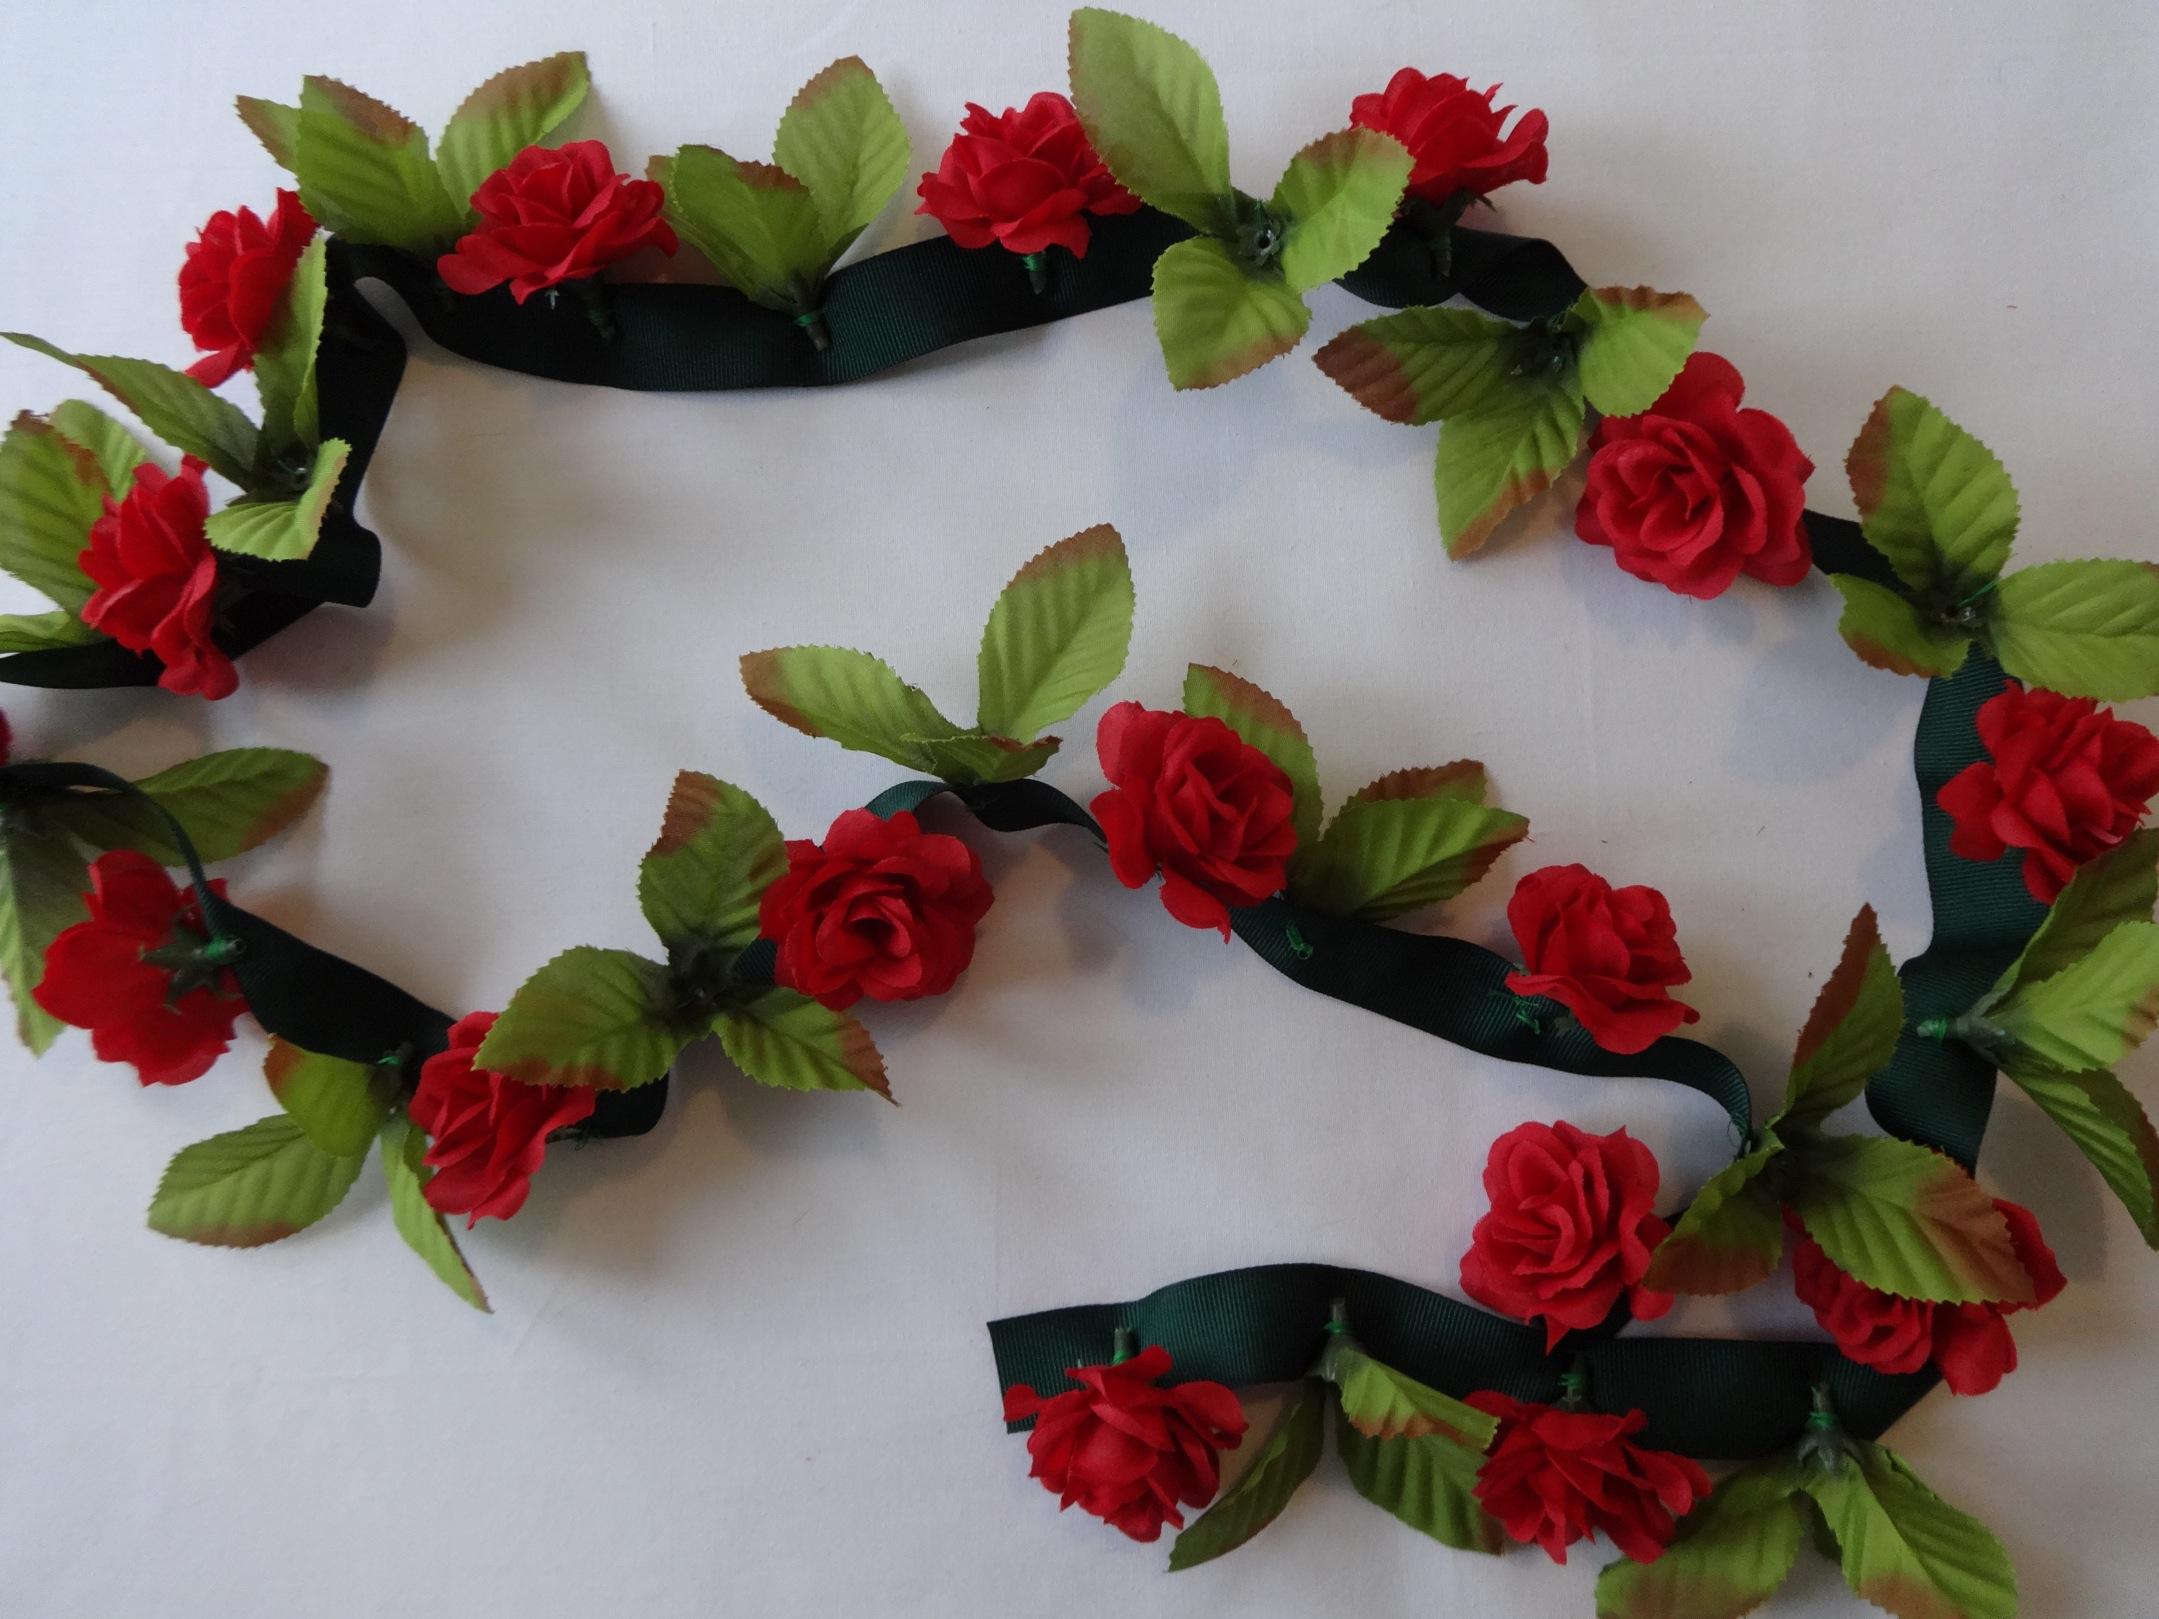 A super easy DIY rose garland that's perfect for Valentine's Day